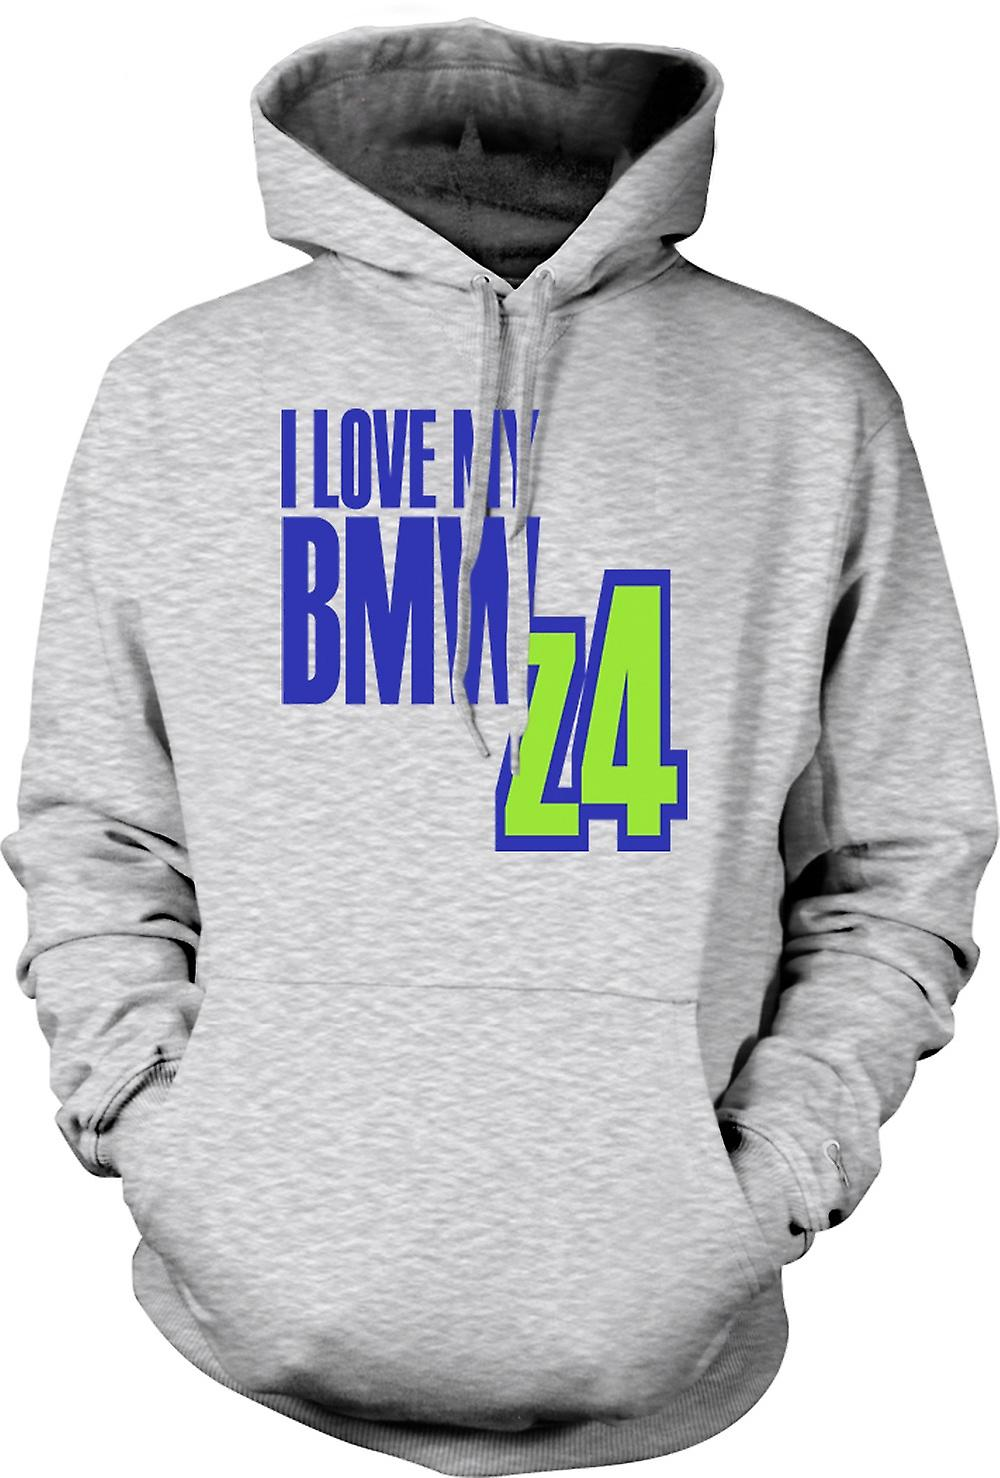 Mens Hoodie - I Love My BMW Z4 - Car Enthusiast